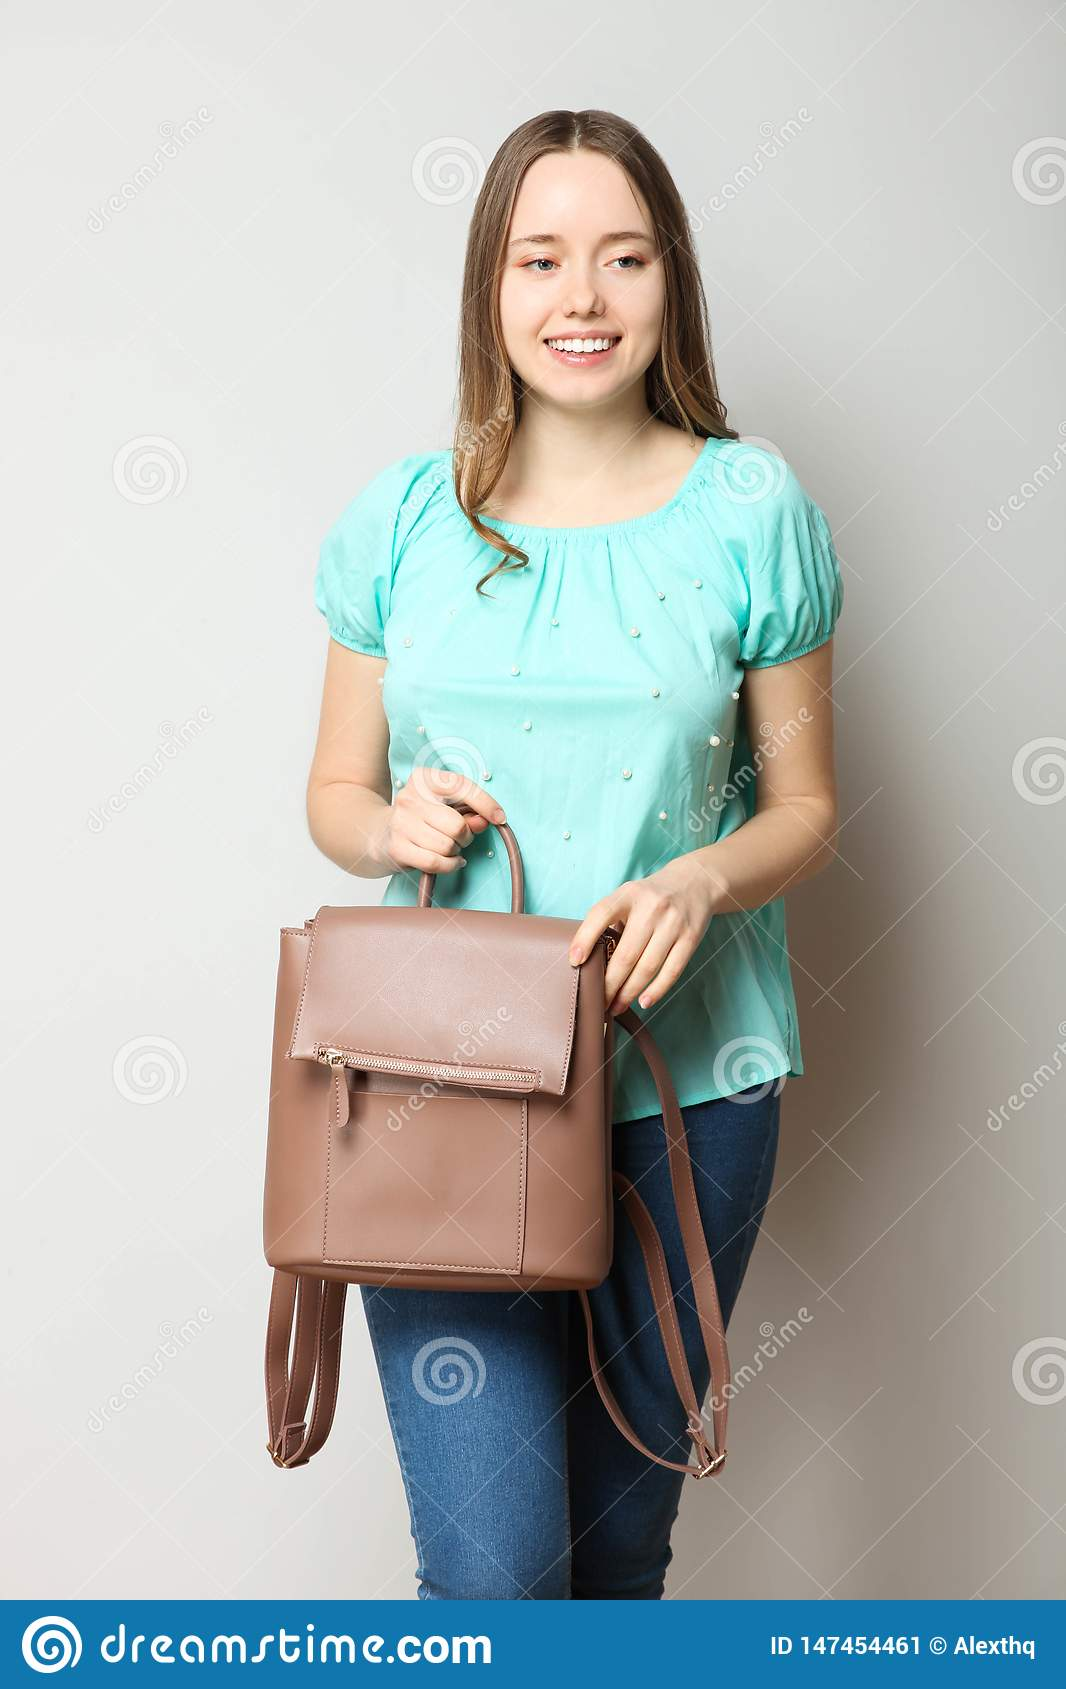 Student in classic casual comfortable clothes with fashionable backpack